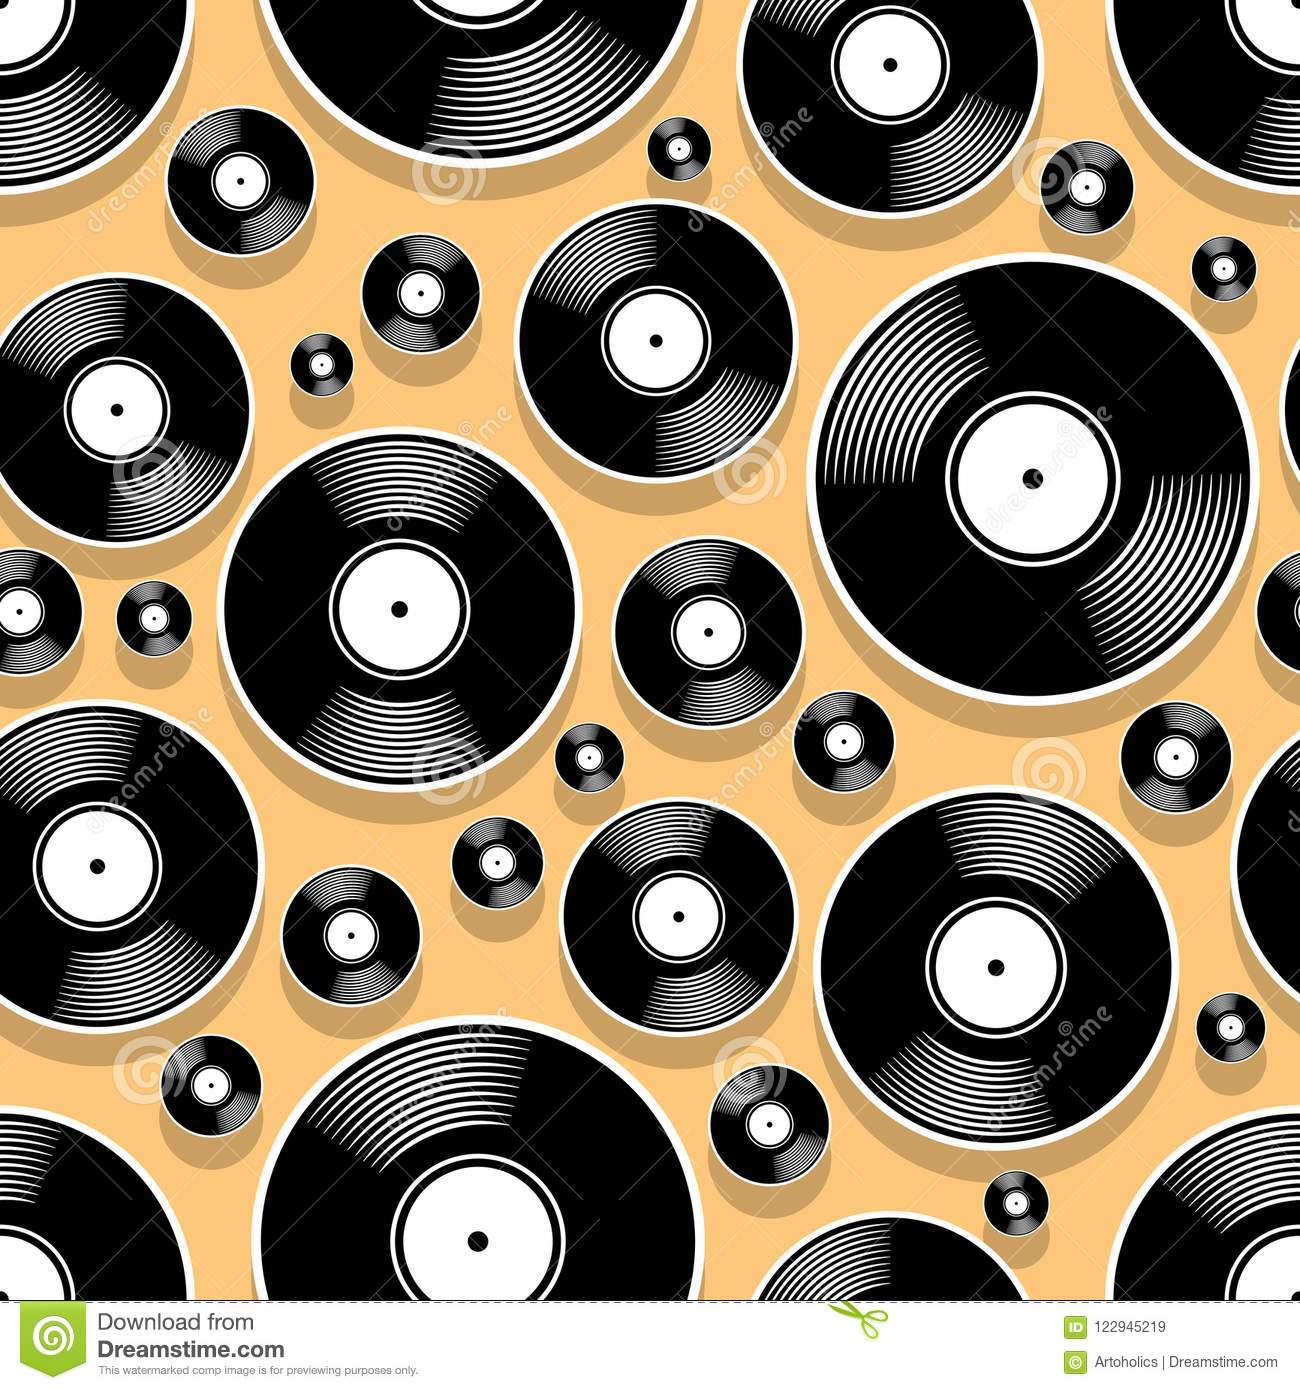 Seamless Digital Pattern With Retro Vintage Vinyl Record